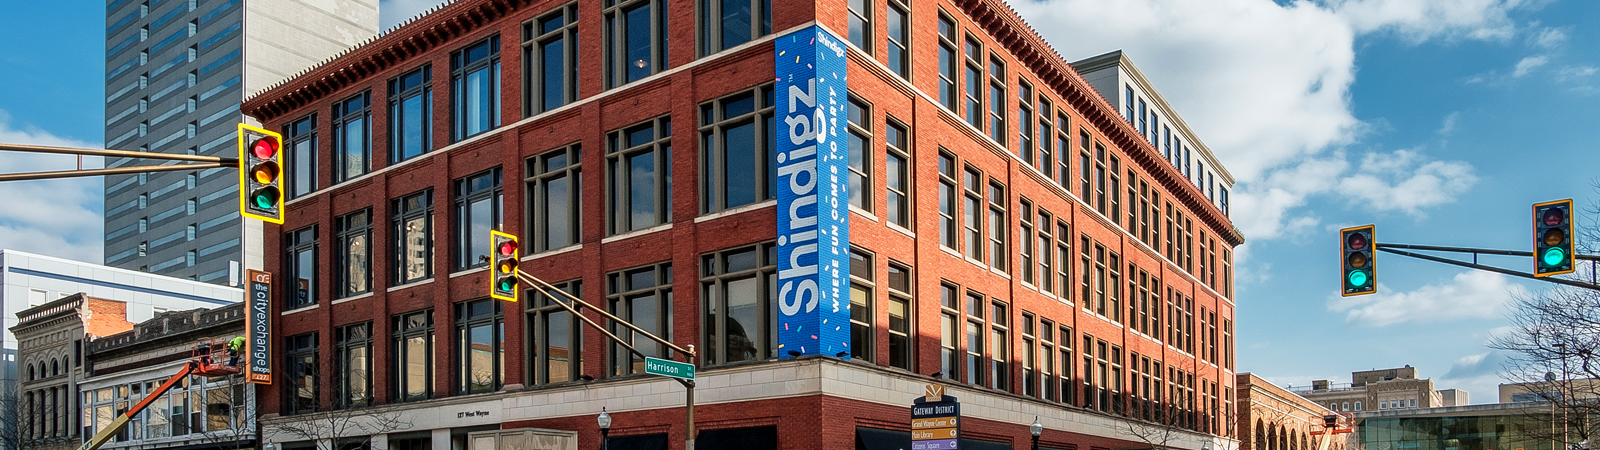 Shindigz&apos;s new downtown corporate headquarters opens in April 2019. <span class=&apos;image-credits&apos;>By Ray Steup</span>